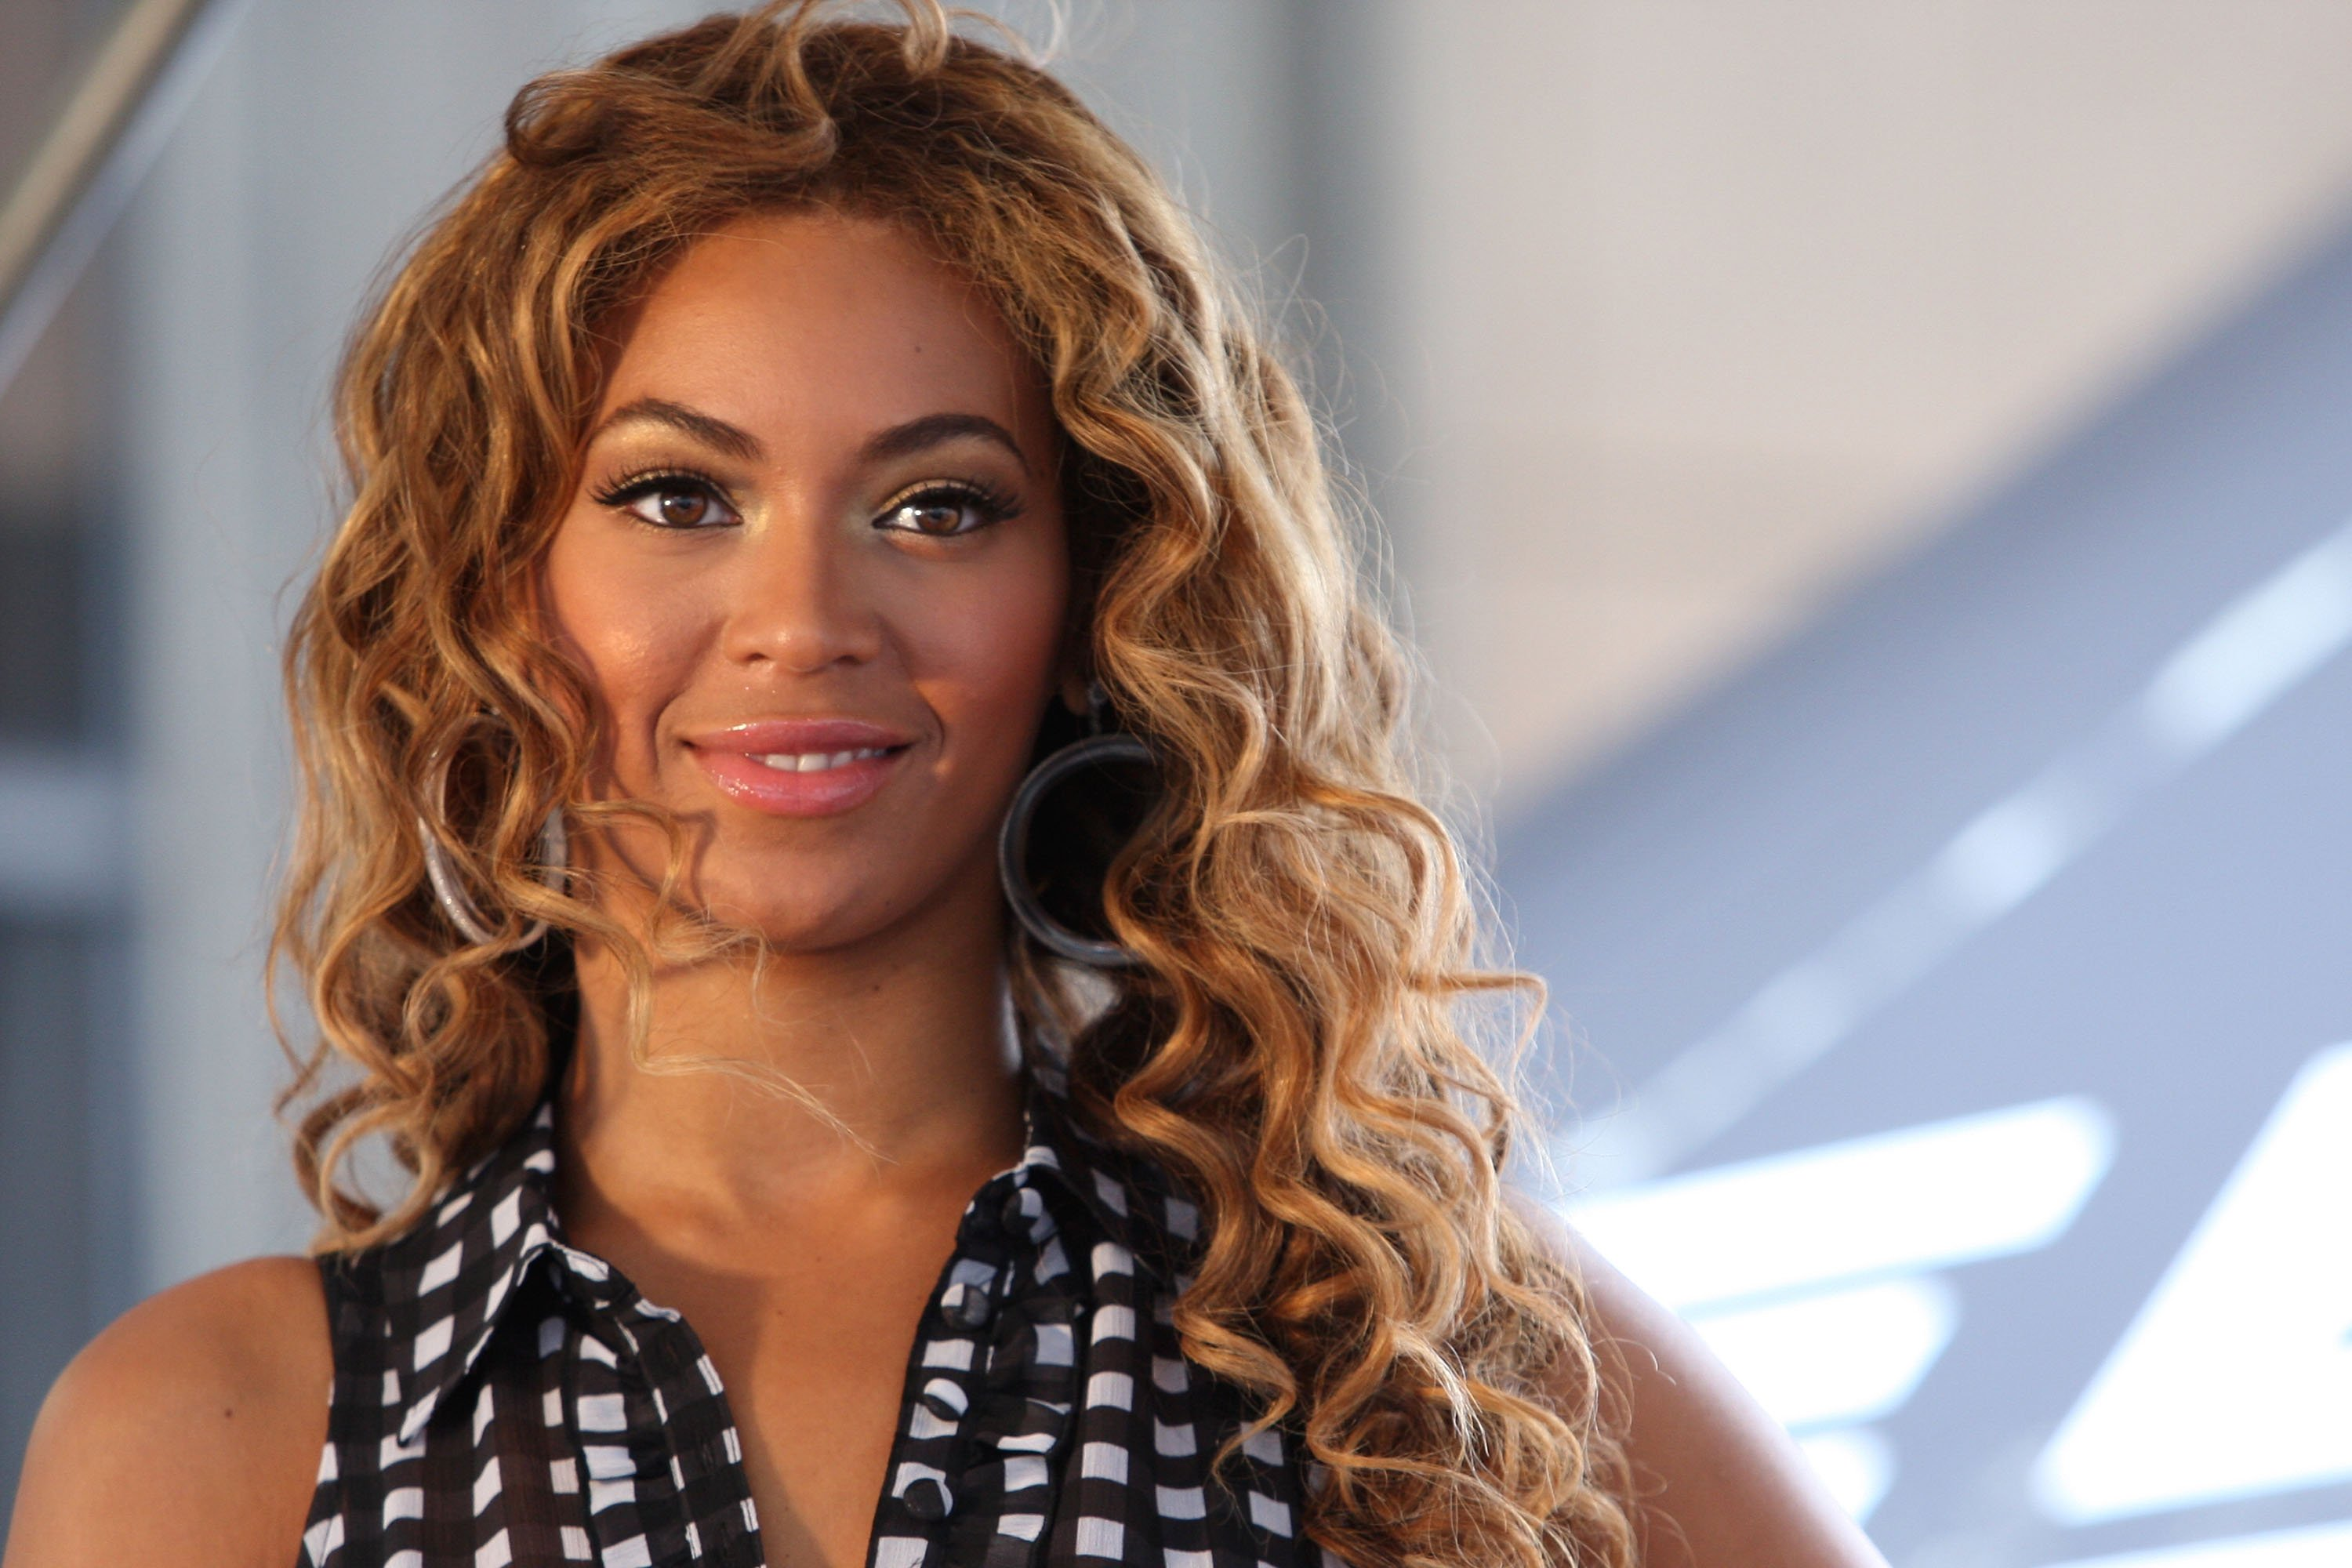 Beyonce at a hunger relief initiative kickoff in June 2009. | Photo: Getty Images